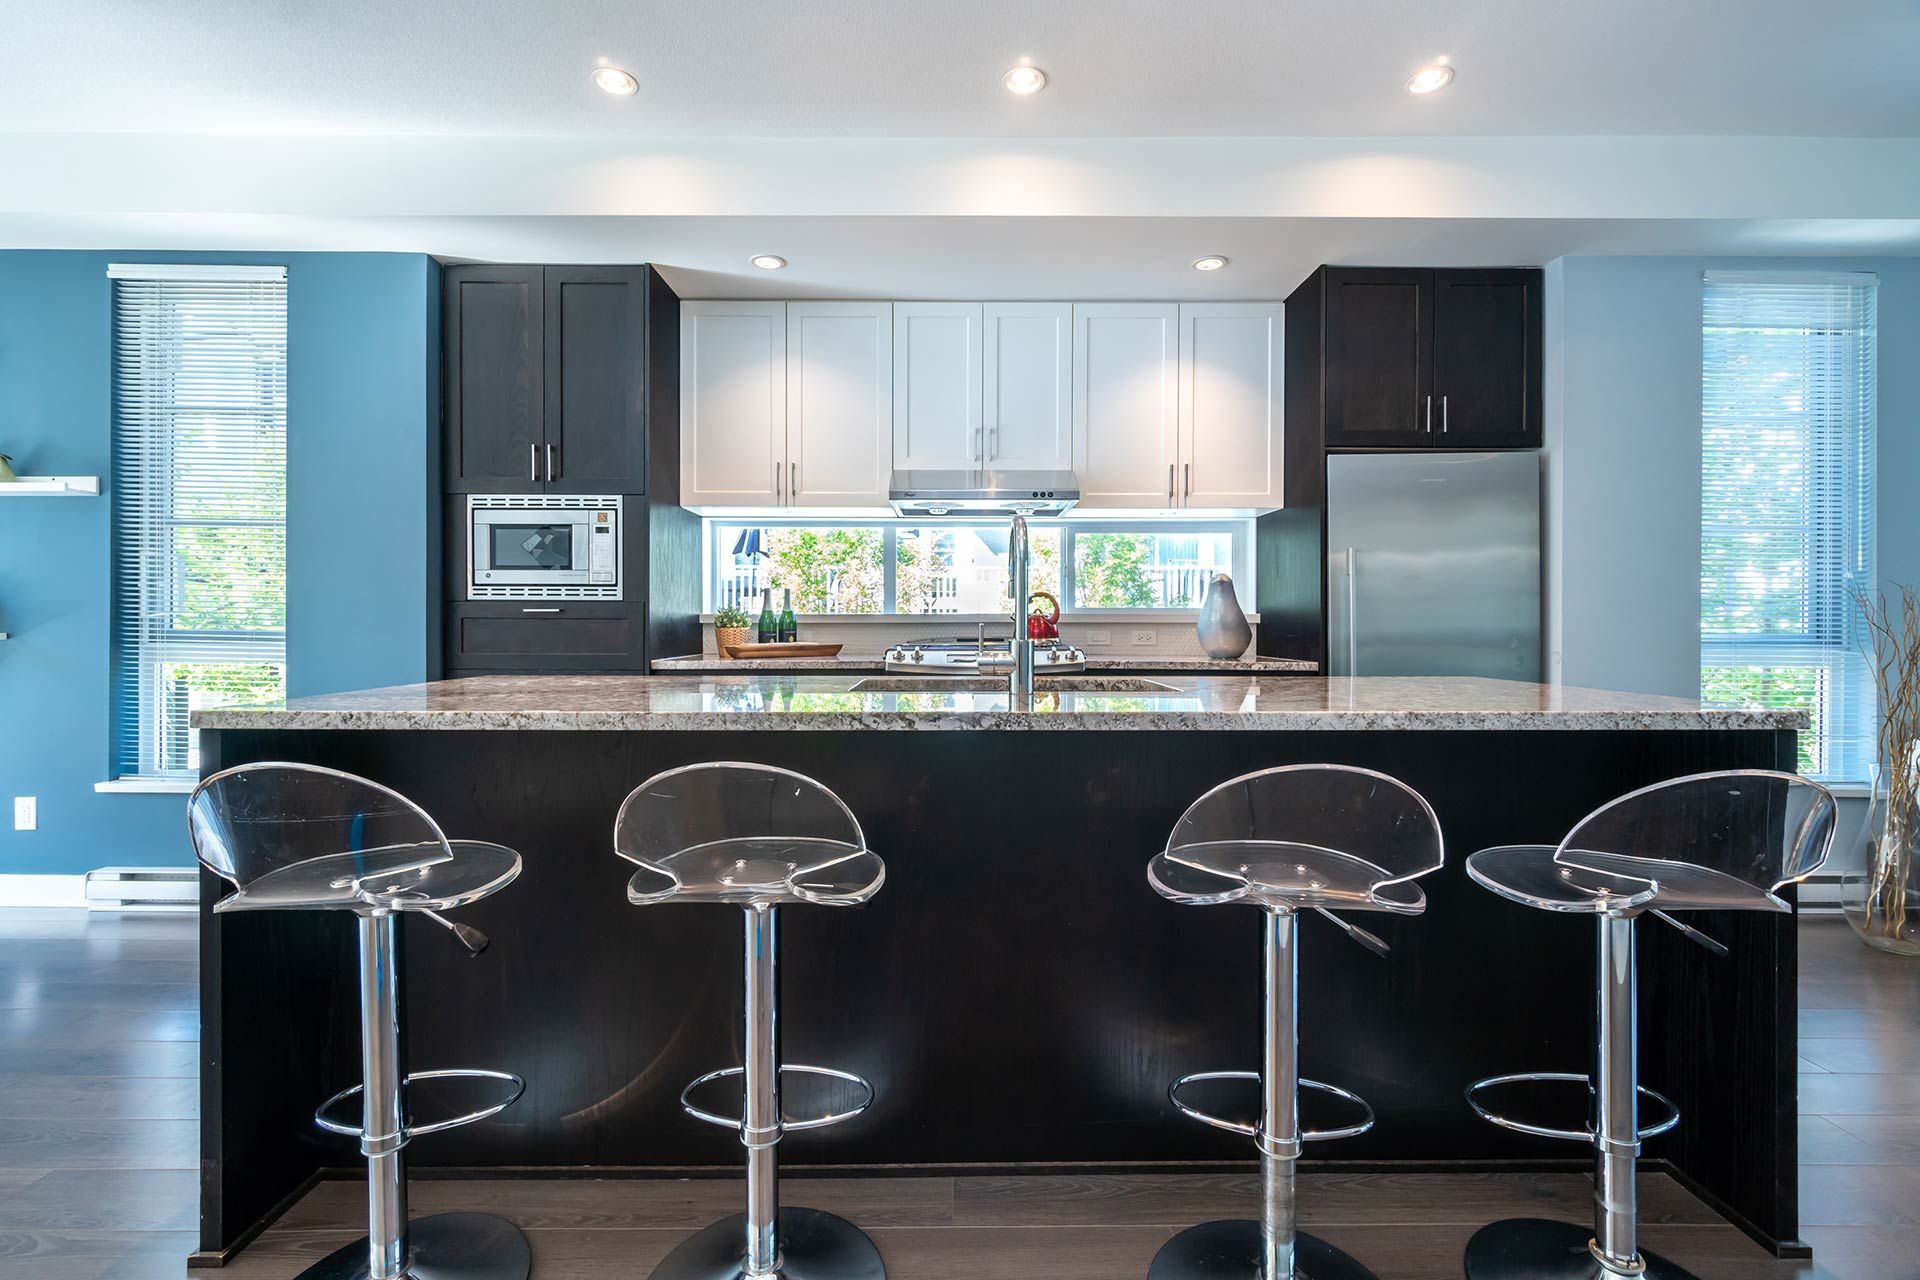 """Photo 7: Photos: 154 548 FOSTER Avenue in Coquitlam: Coquitlam West Townhouse for sale in """"BLACK + WHITE"""" : MLS®# R2587208"""